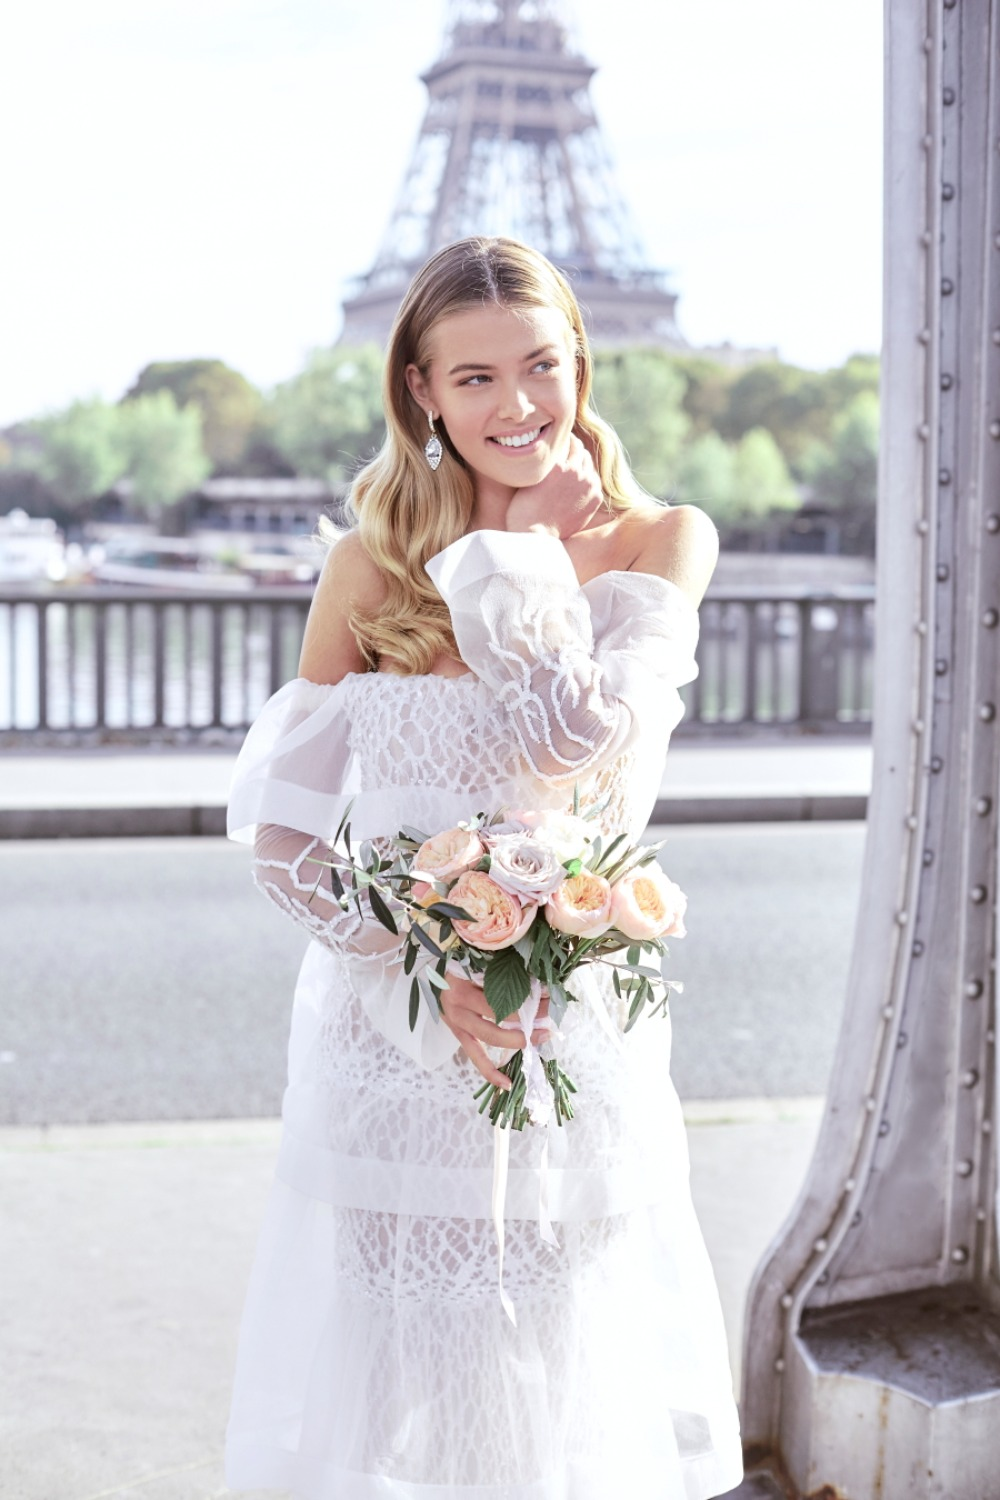 Gorgeous bridal look in Paris